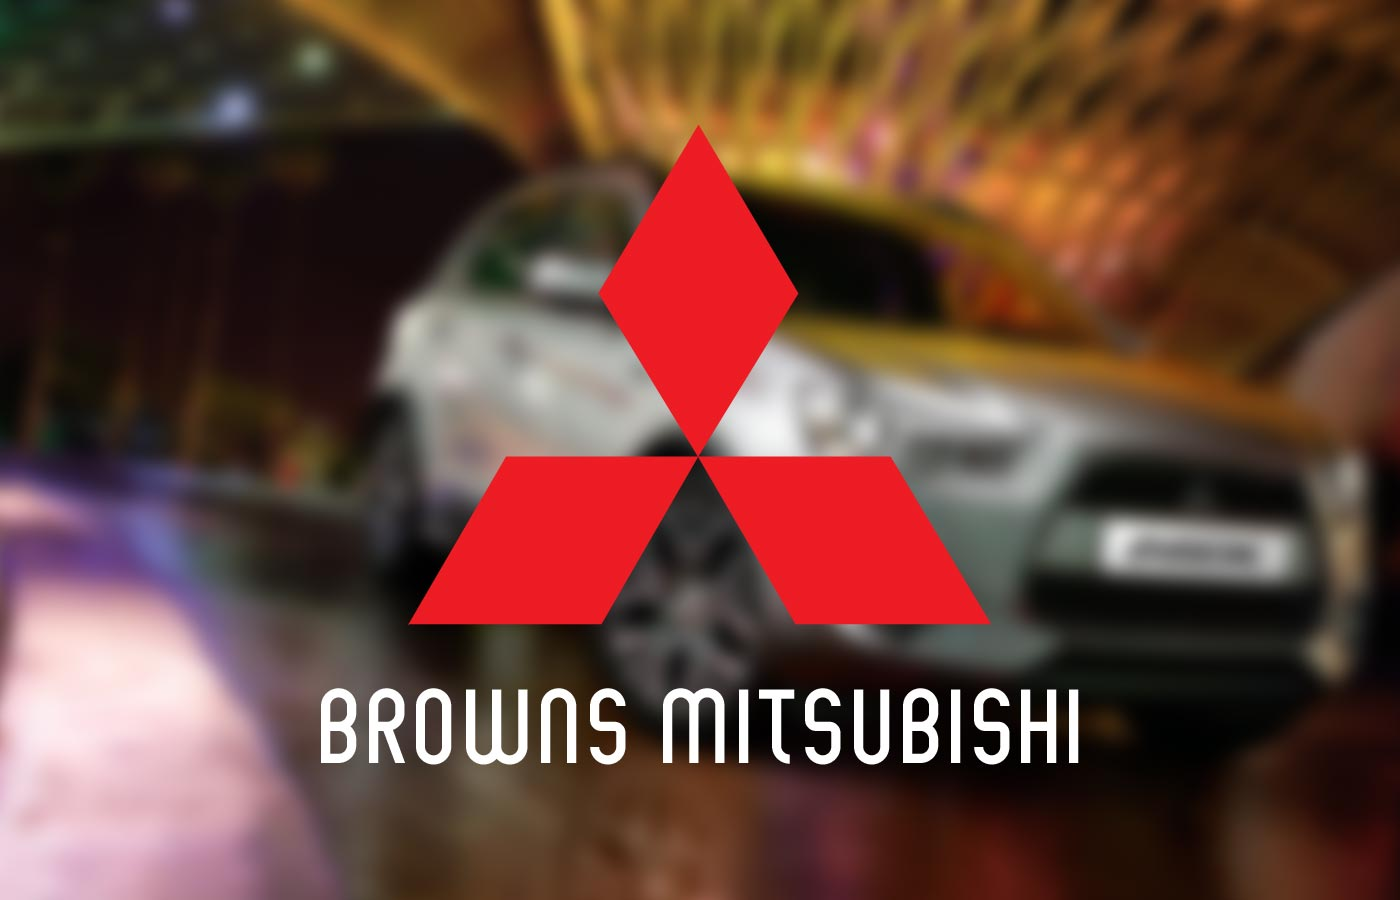 Browns Mitsubishi Advertising Campaign Design